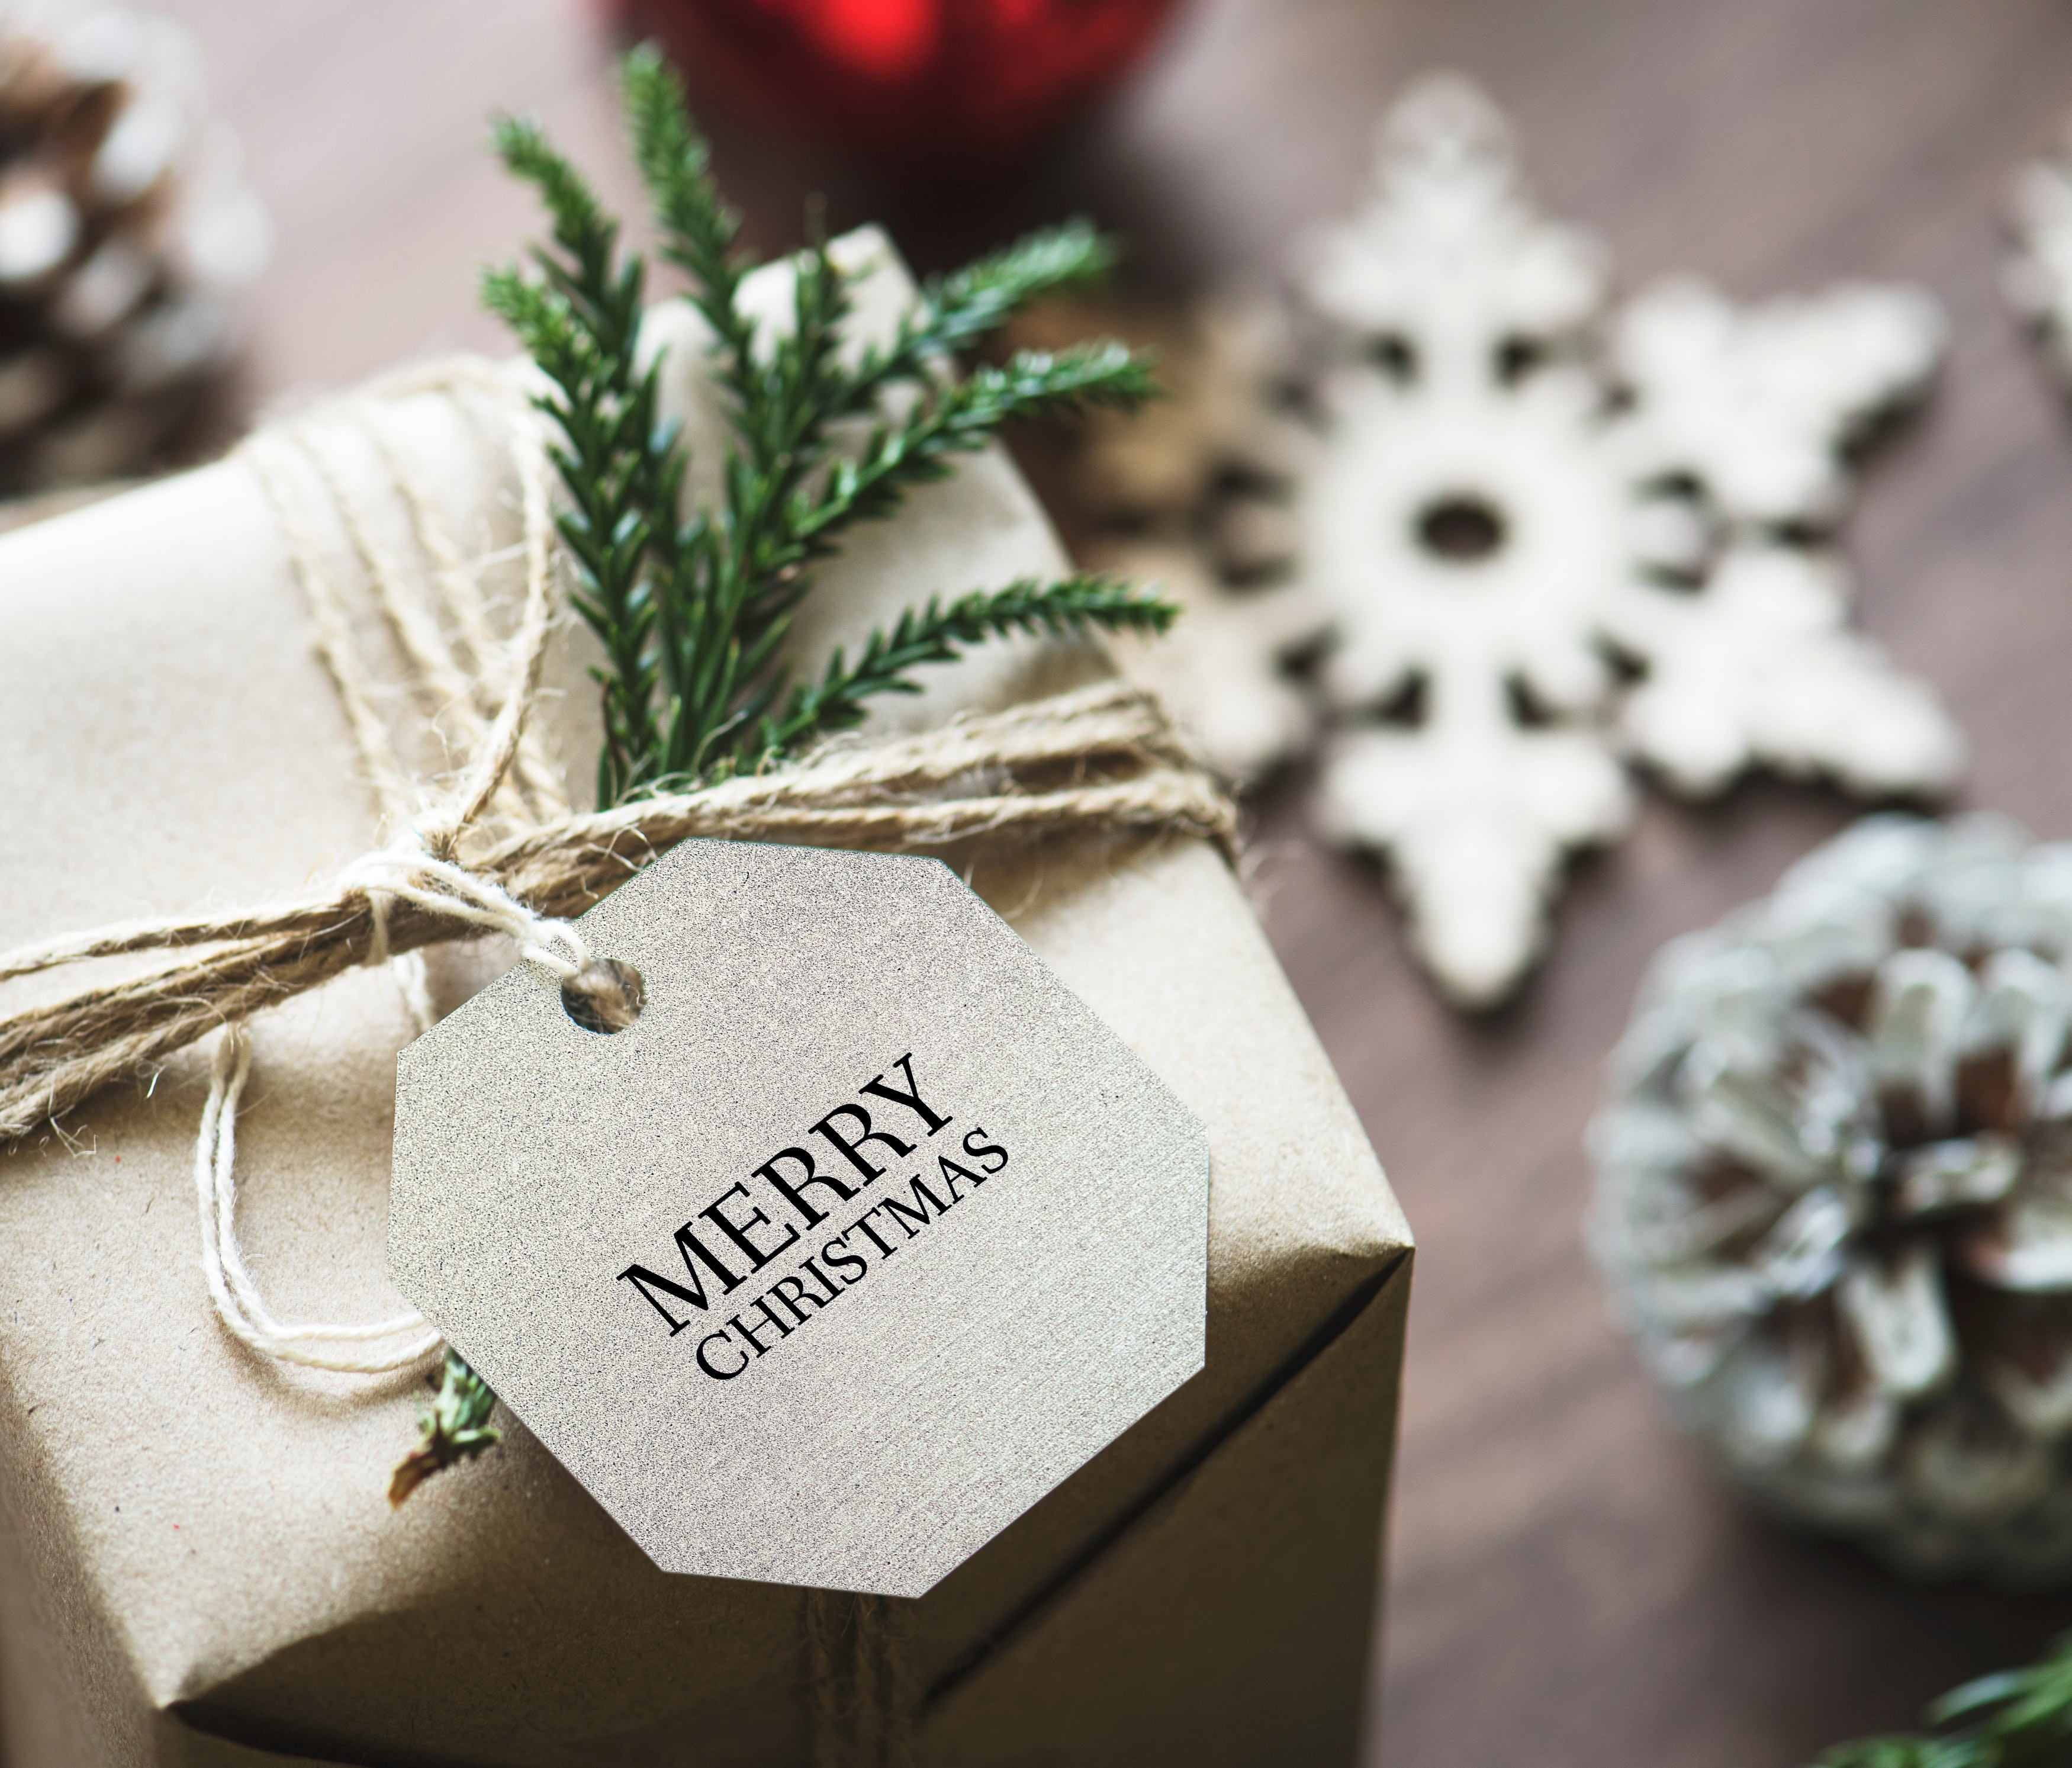 86611 download wallpaper Holidays, Present, Gift, Christmas, New Year, Tag, Box screensavers and pictures for free